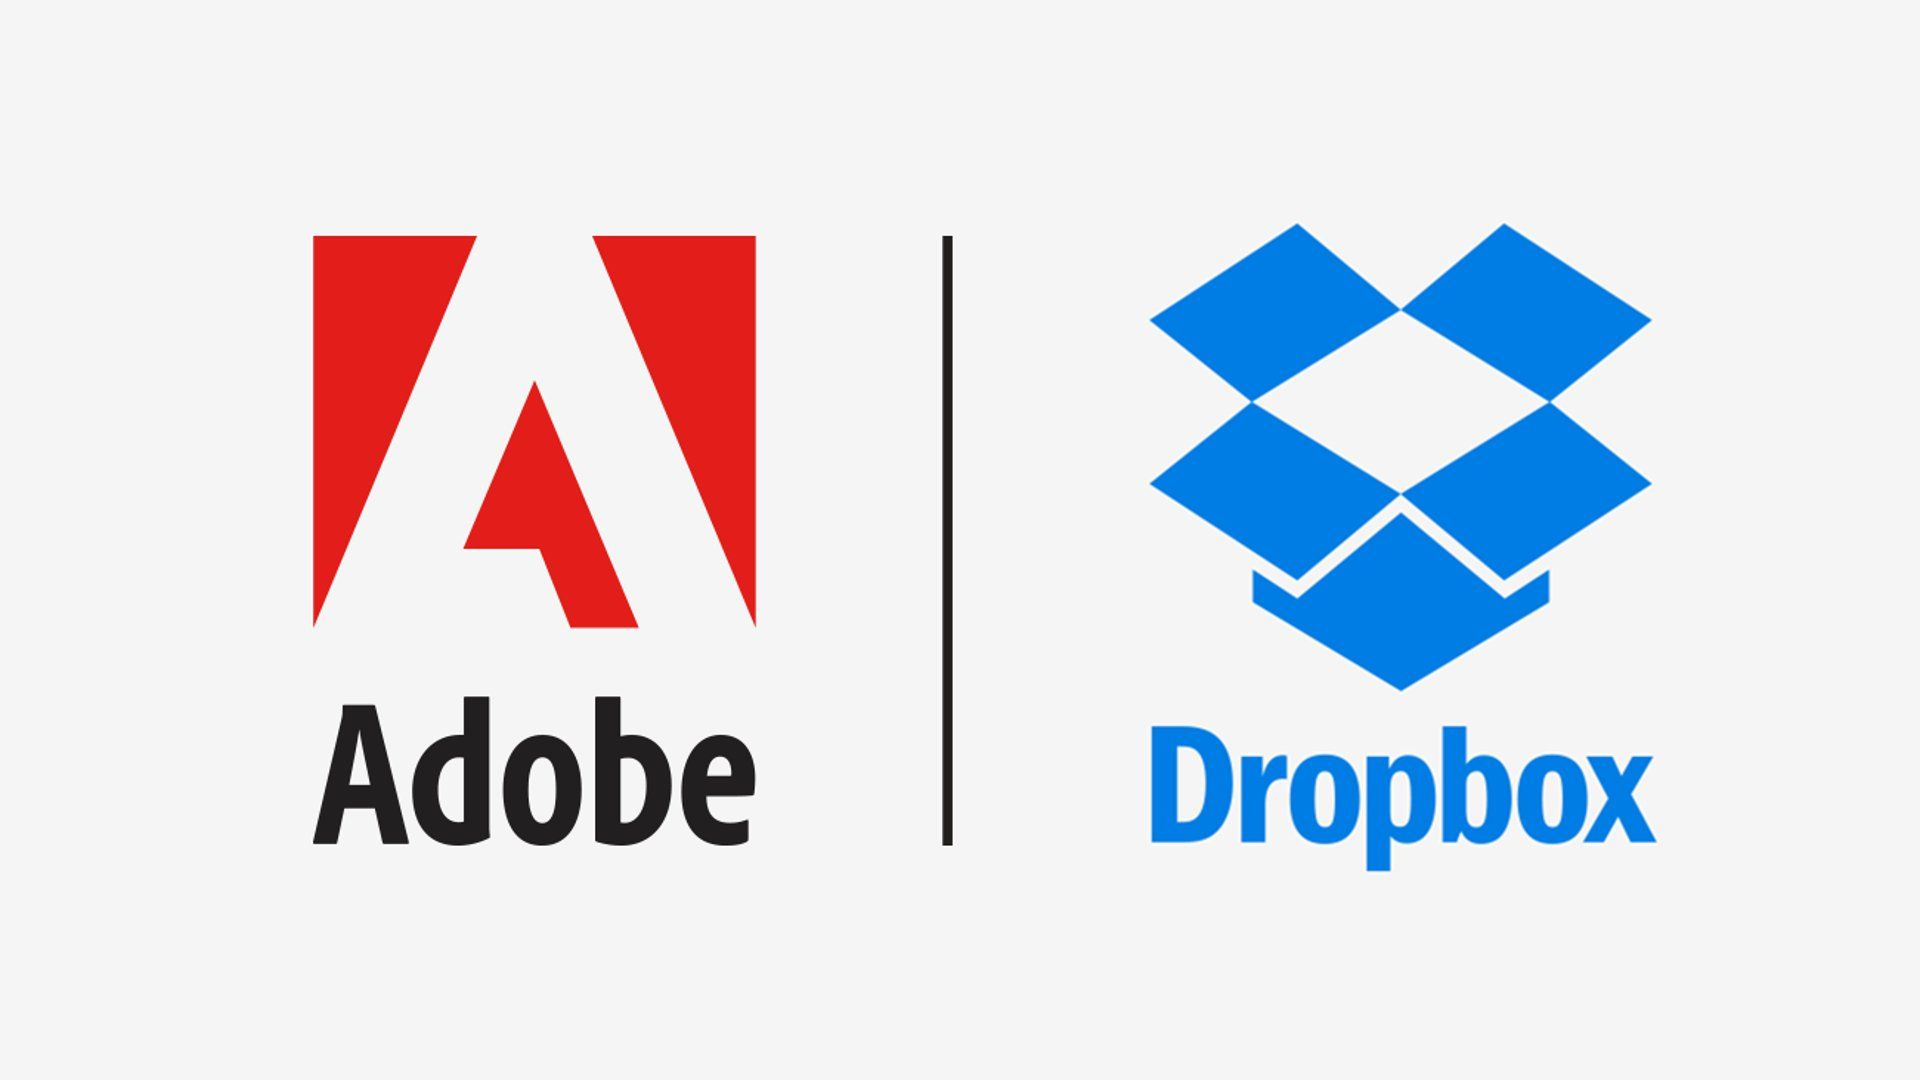 Dropbox has announced that it is partnering with Adobe to